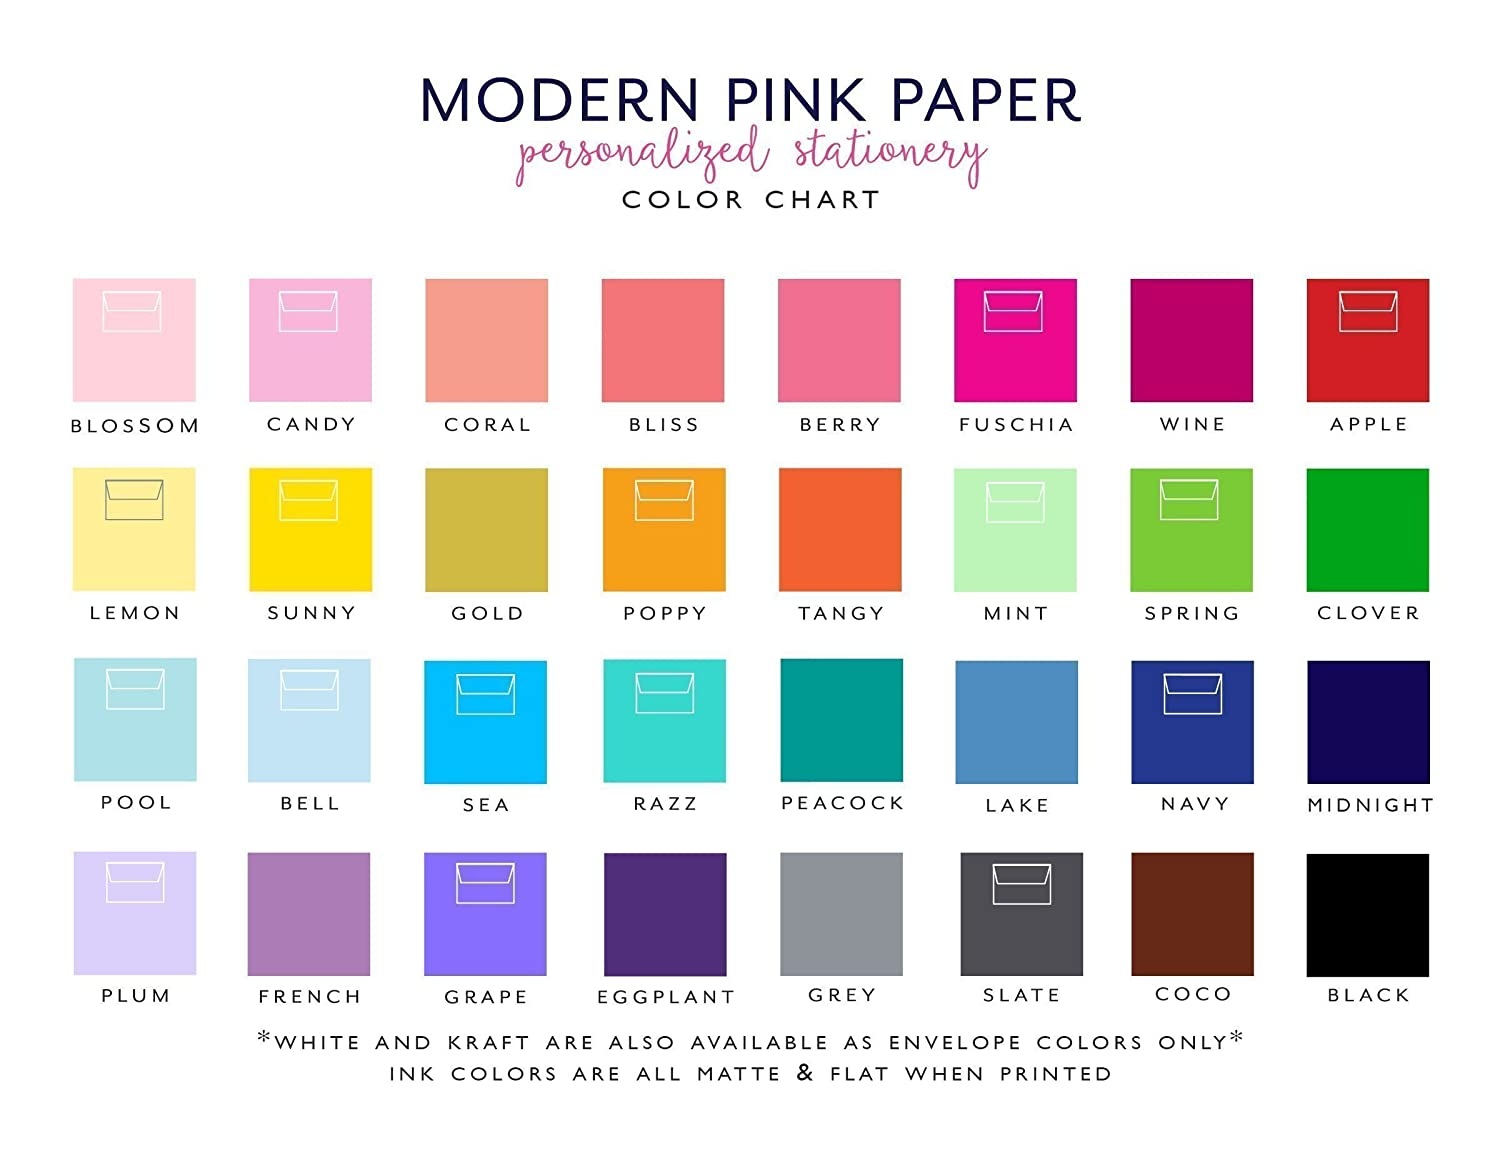 Personalized Kids Lined Notepad Your choice of ink color and envelope color Personalized Stationary for girls size 5.5in x 8.5in 50 sheets